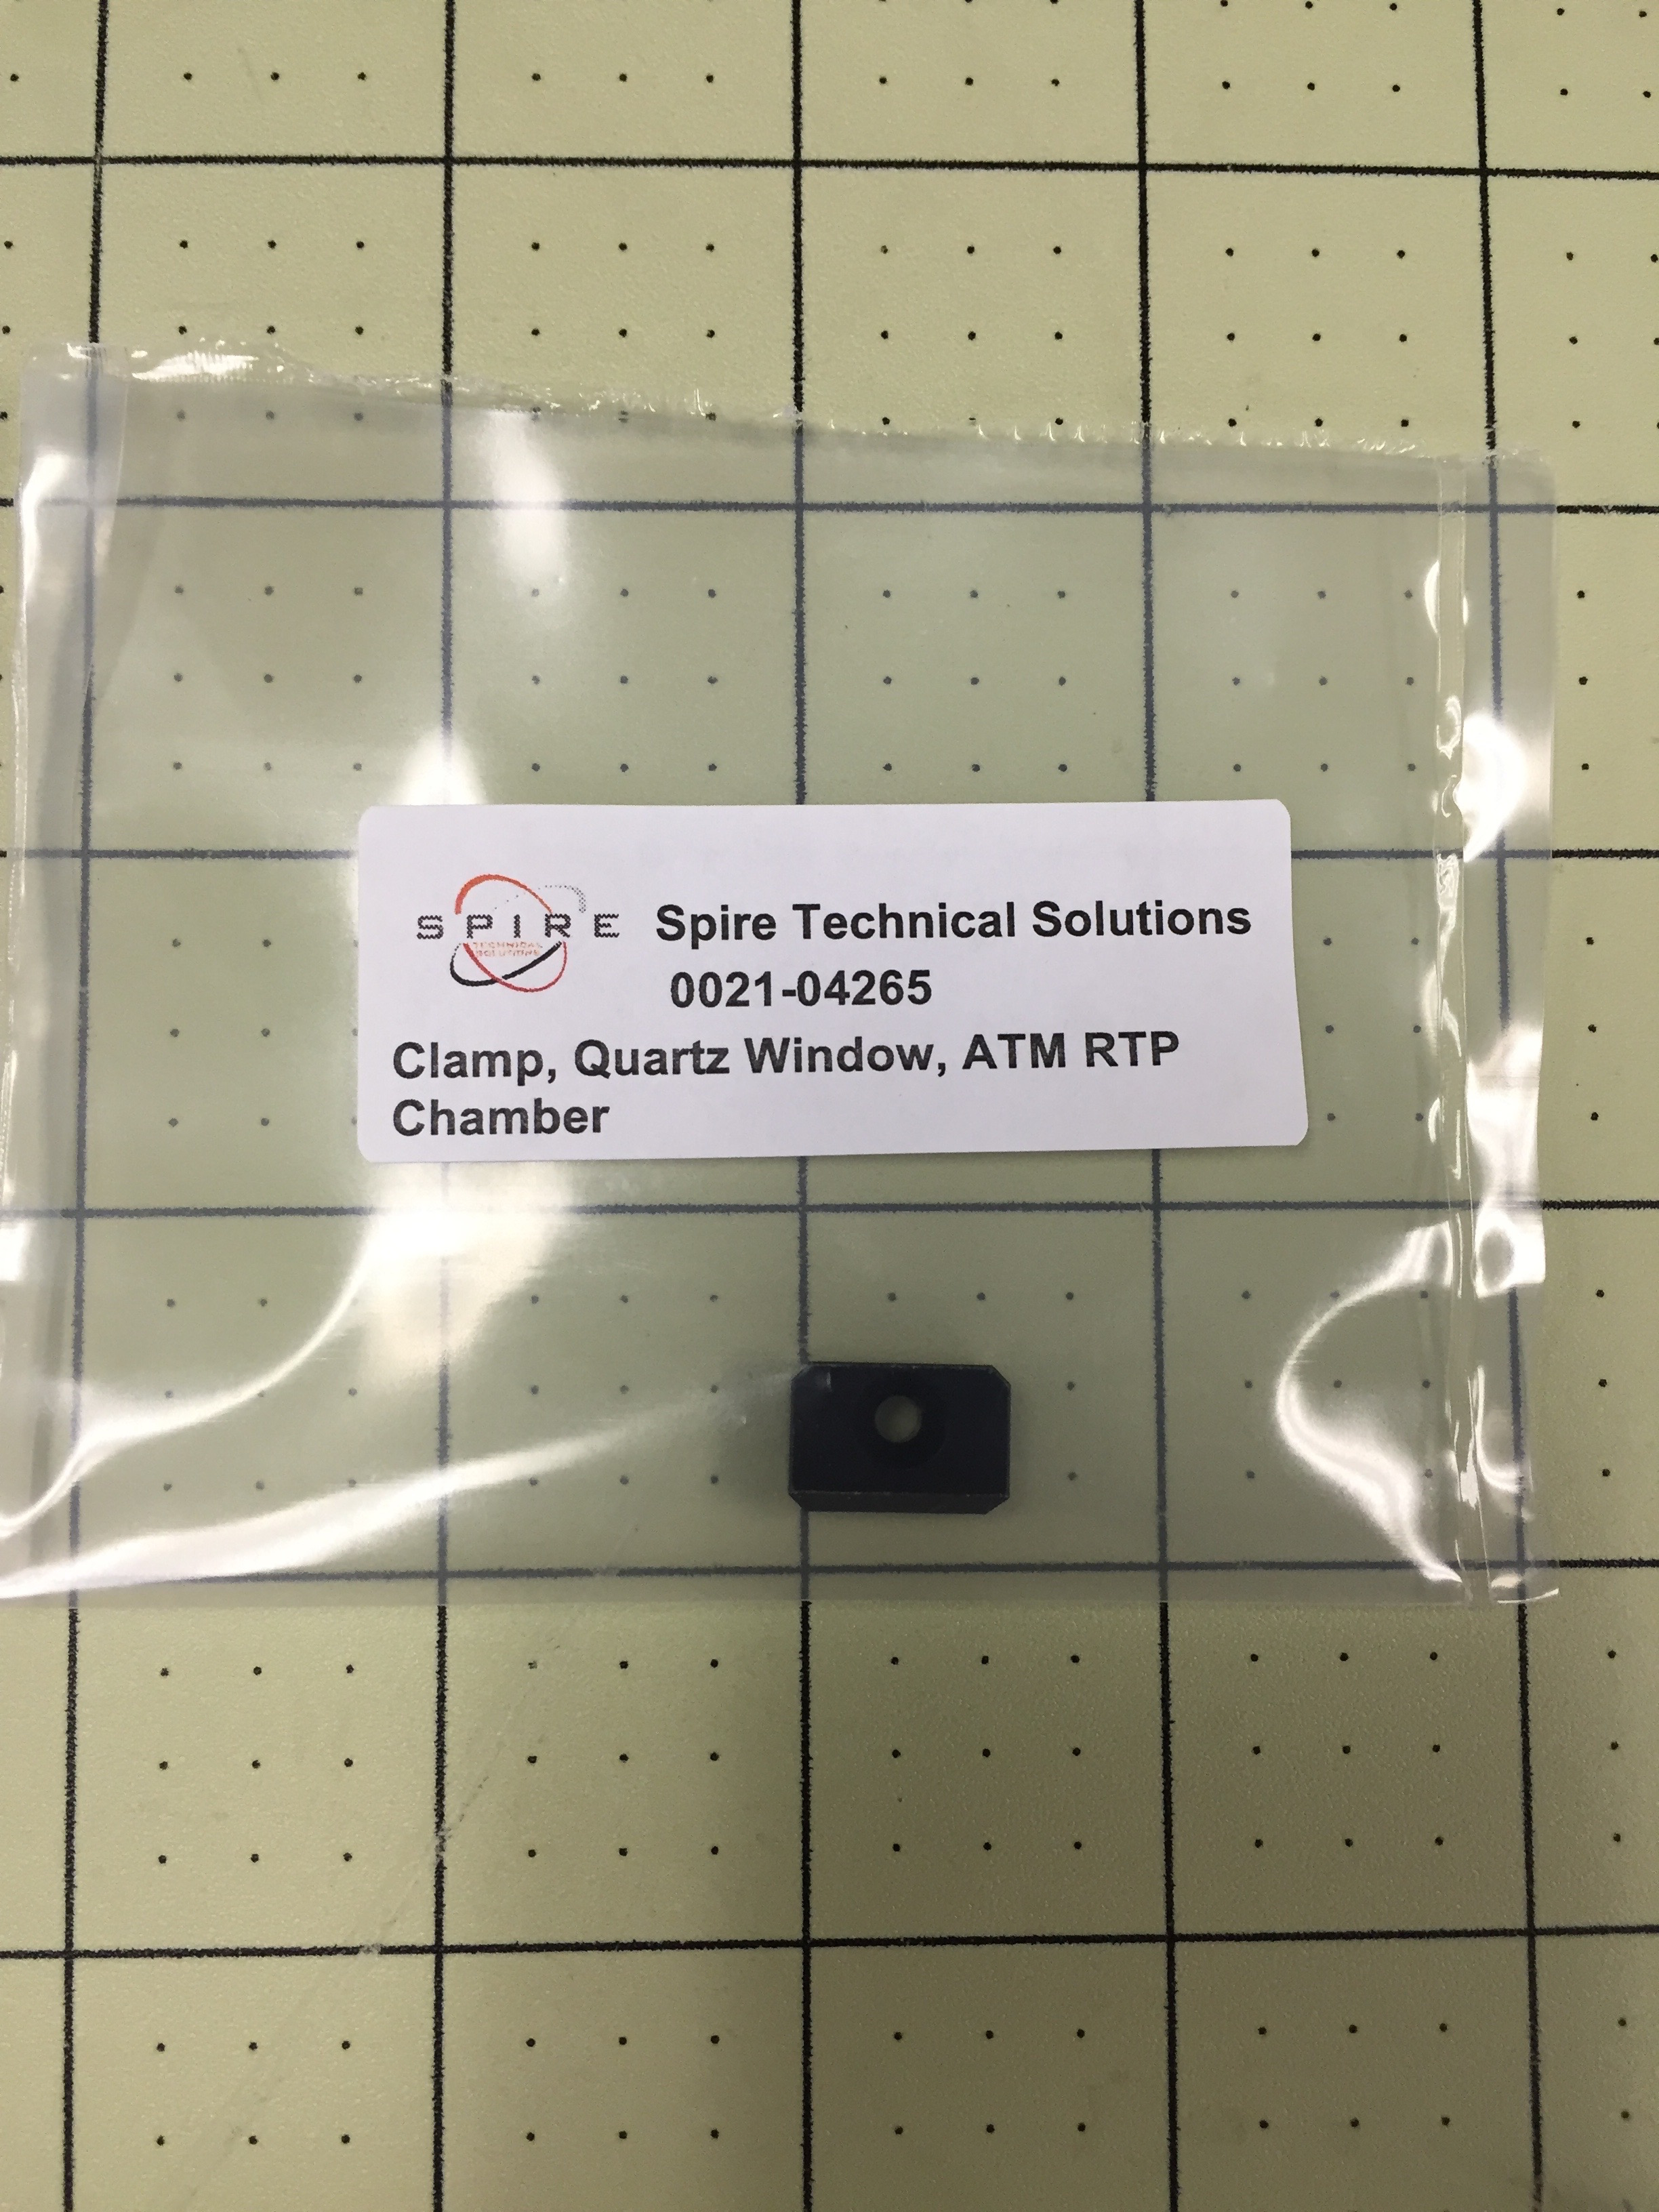 Clamp, Quartz Window, ATM RTP Chamber